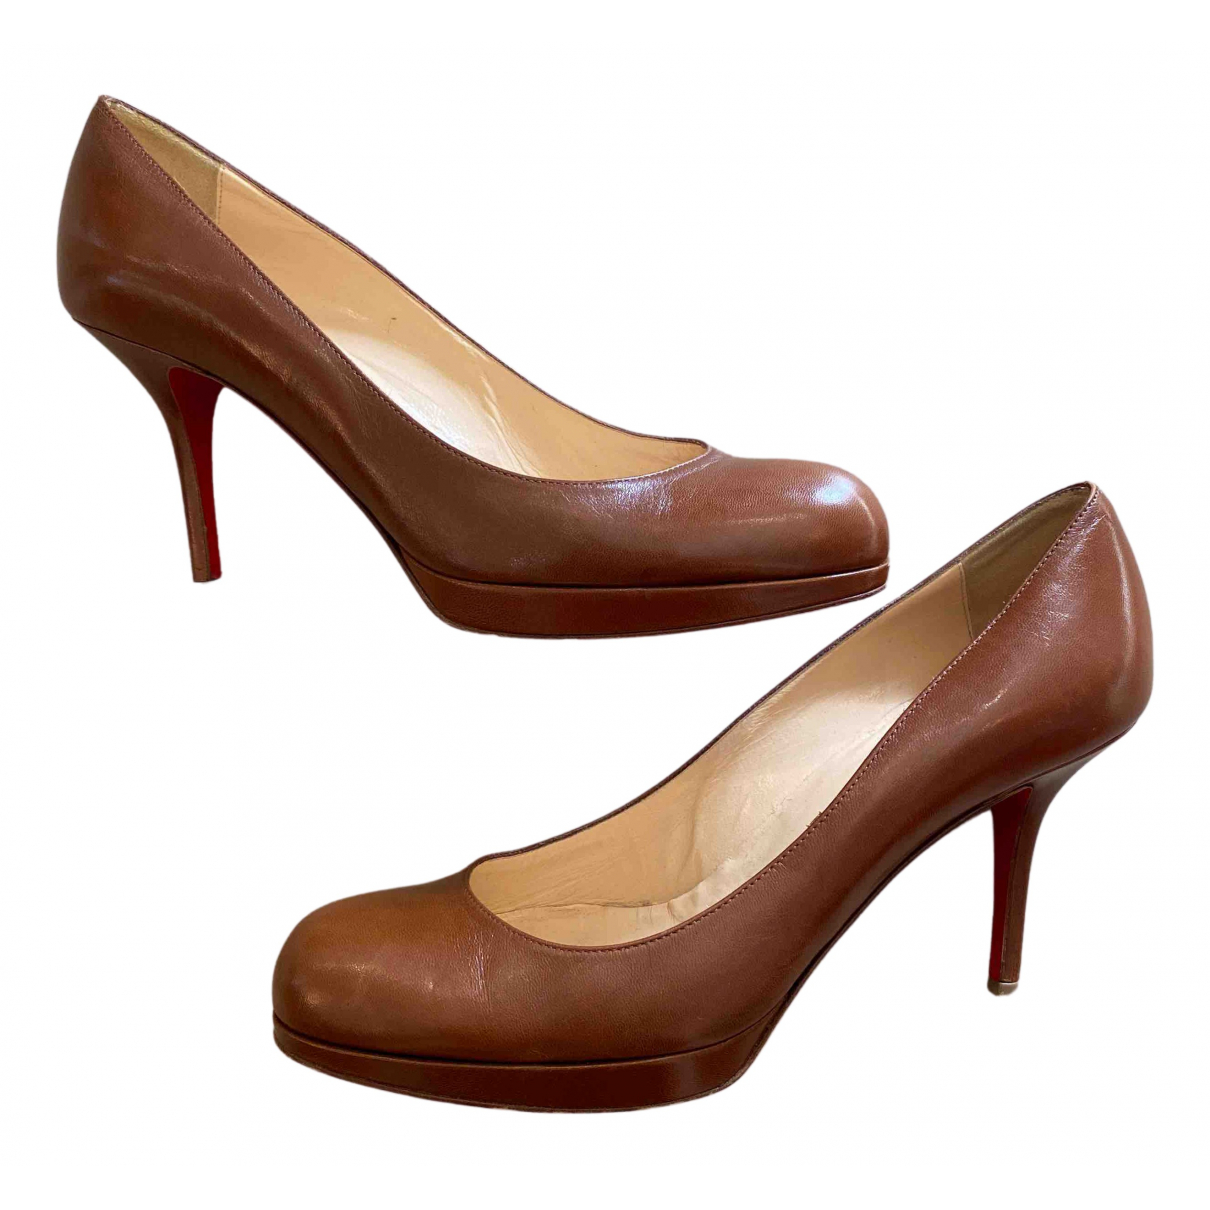 Christian Louboutin N Brown Leather Heels for Women 39 EU